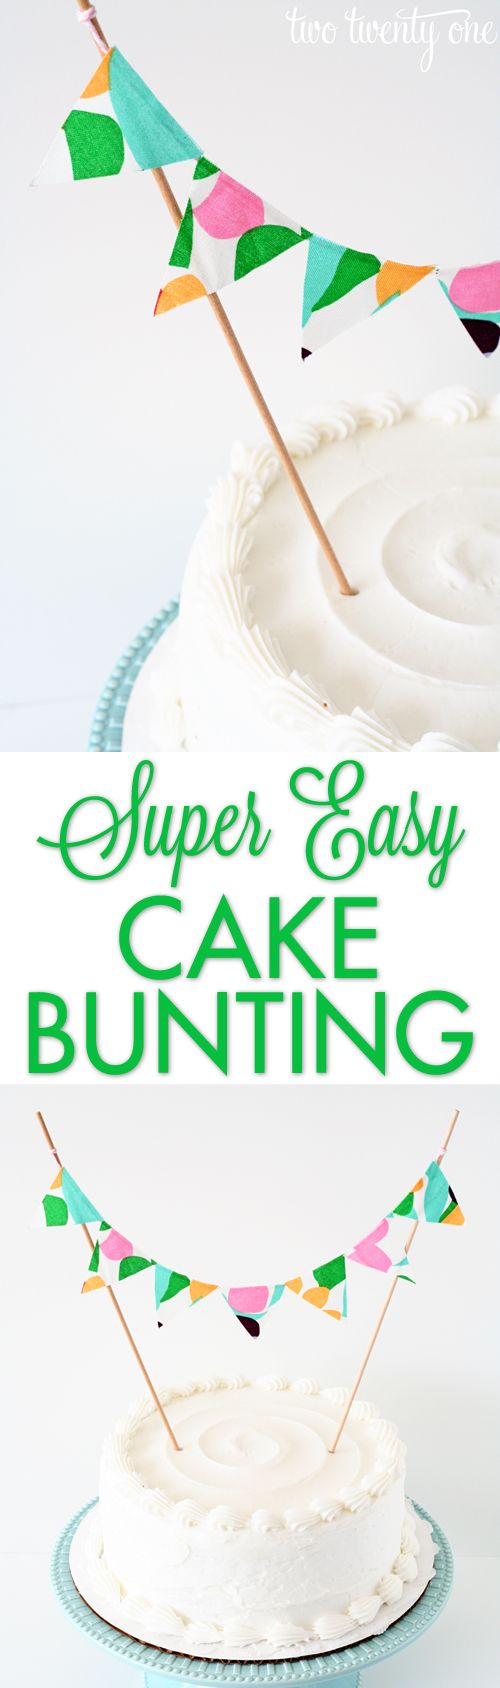 GREAT tutorial on how to make cake bunting!